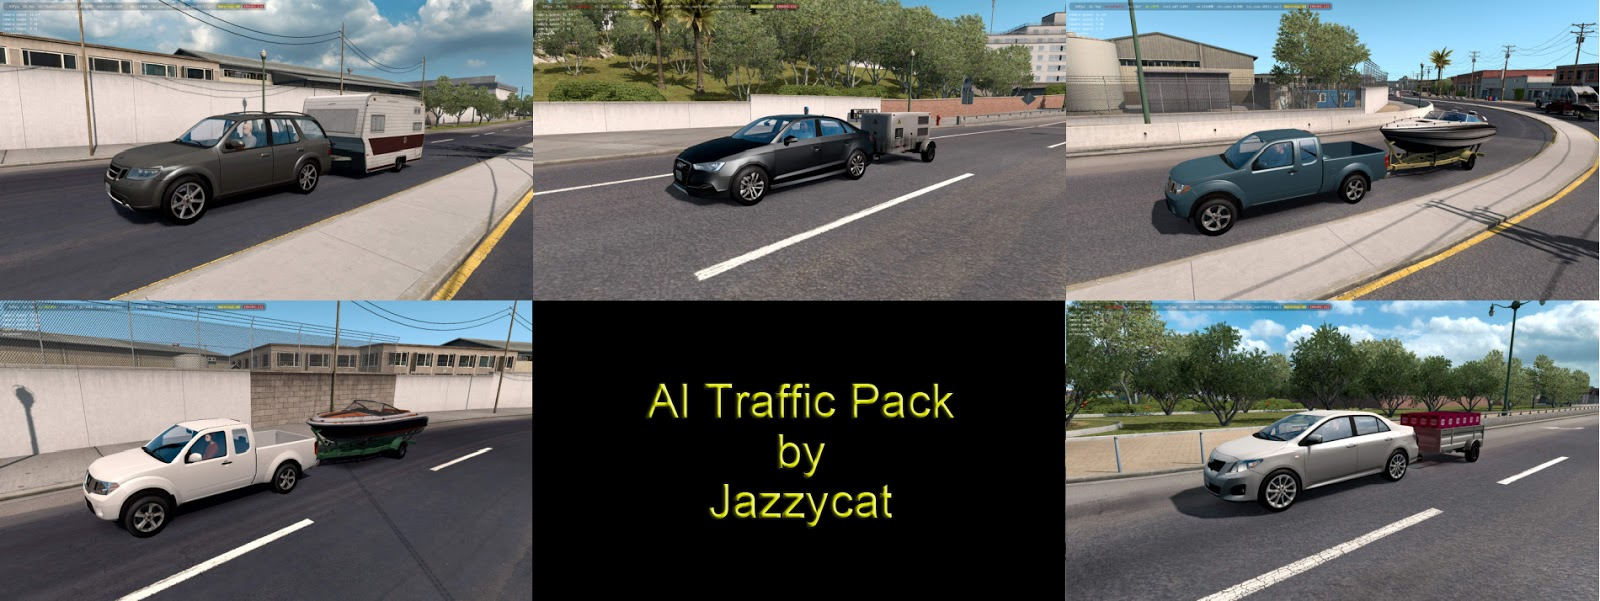 Sinagrit Baba's Workshop: ATS - AI Traffic Pack v6 0 by Jazzycat